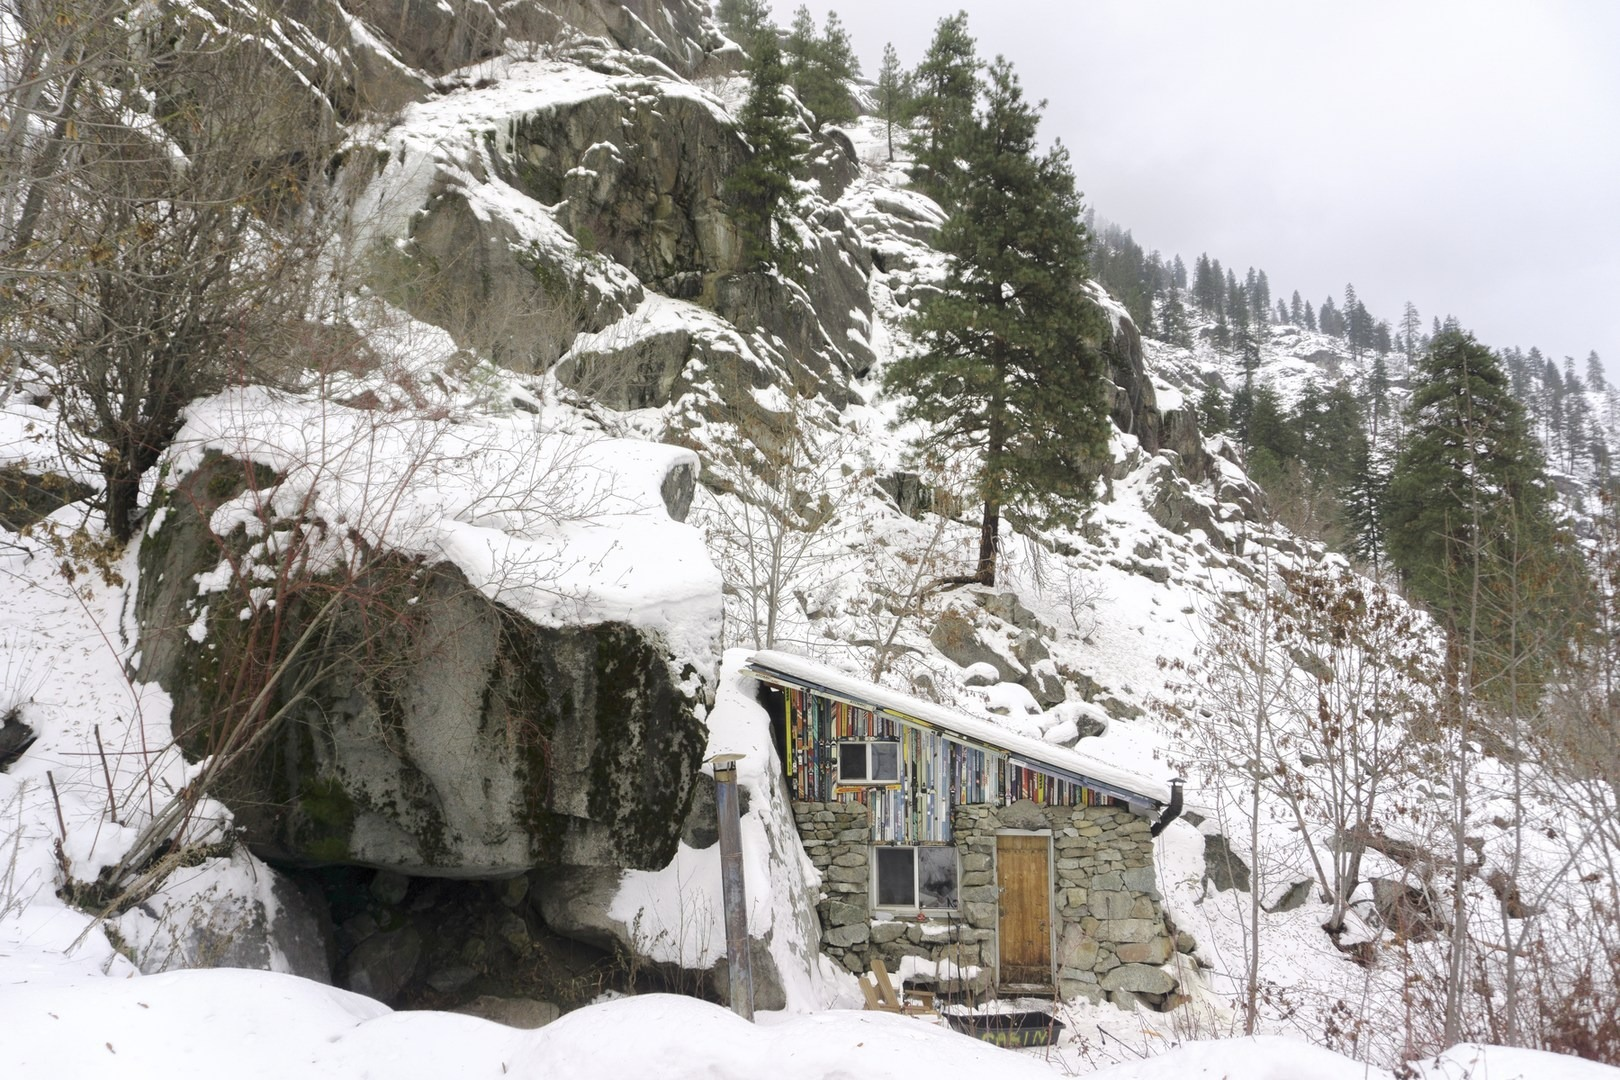 The Rustic Stone Cabin 10 Bucket List Lodges Perfect For Winter